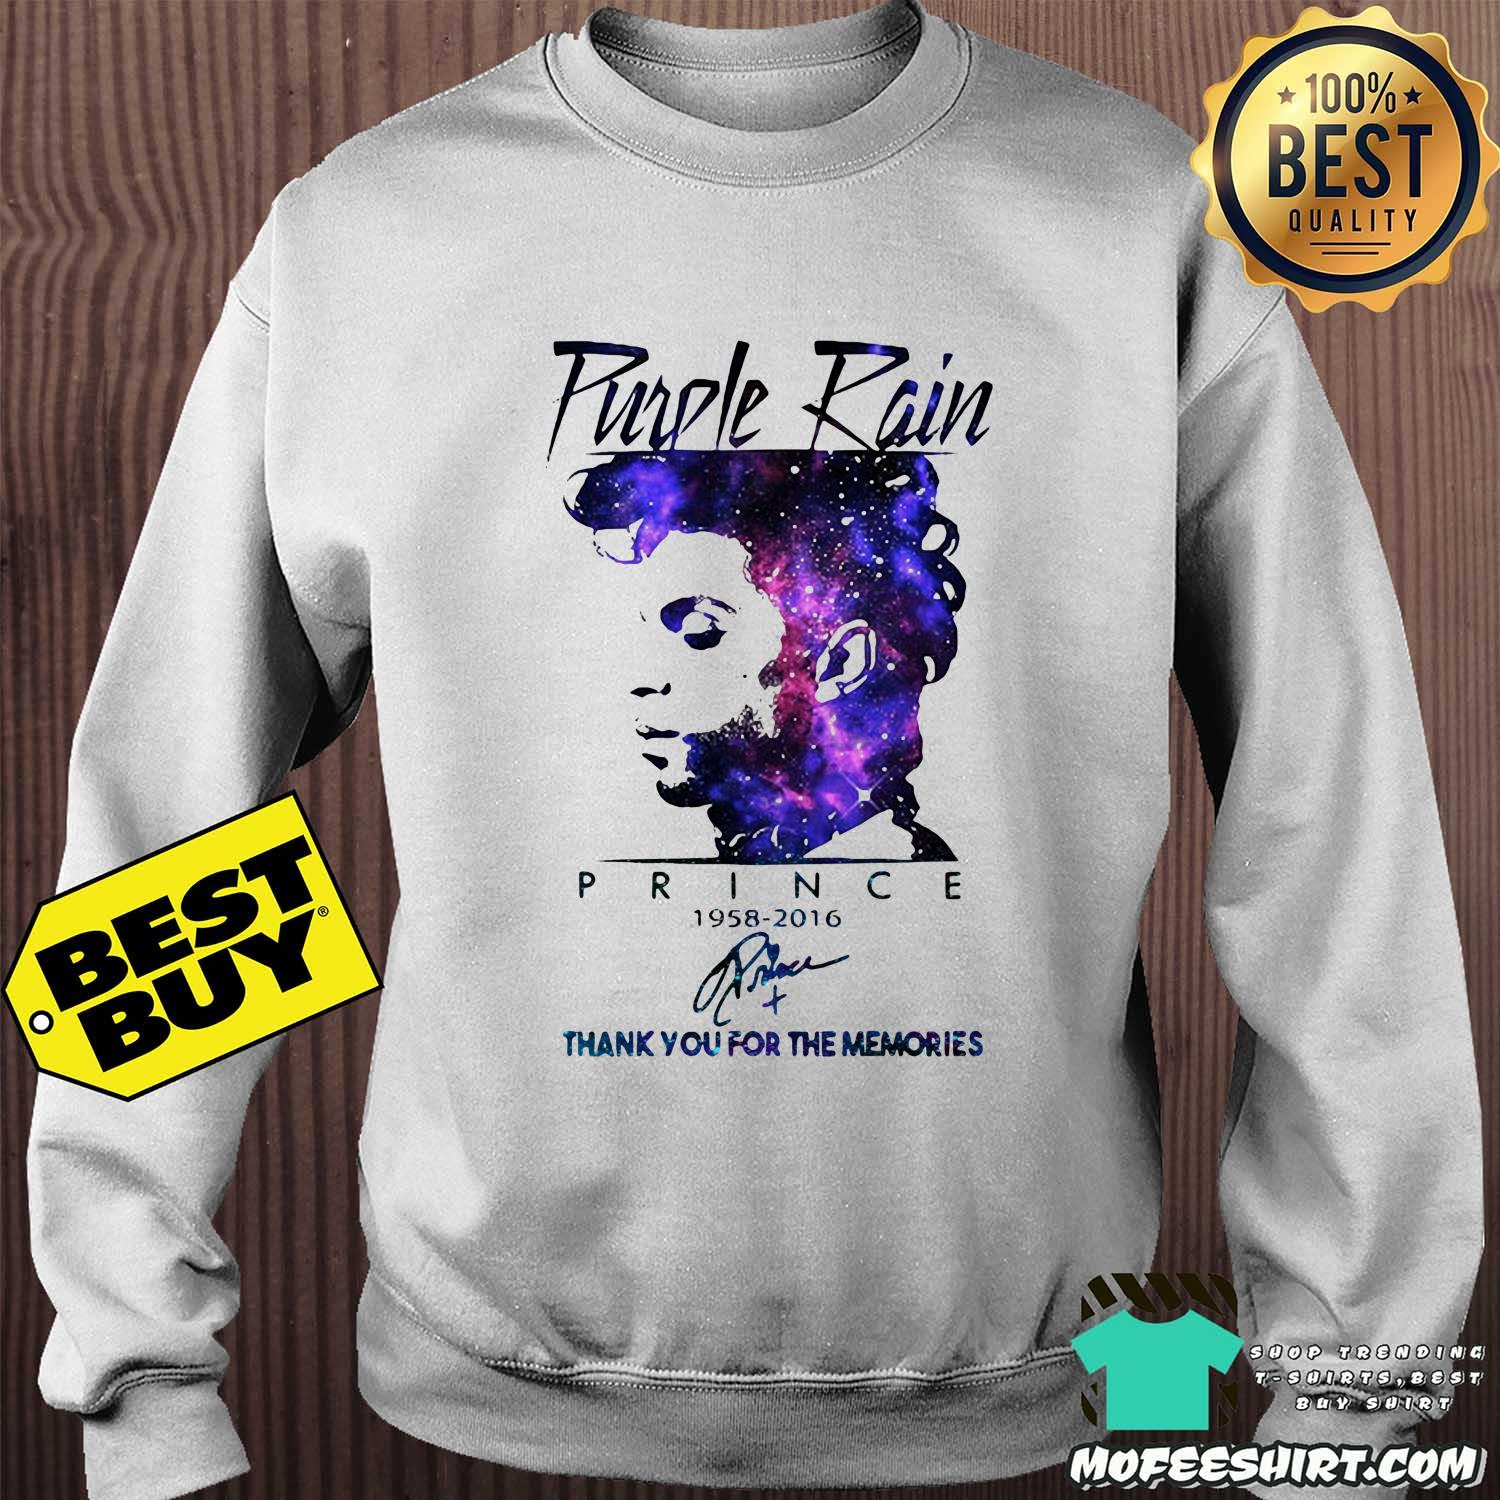 Purple Rain Prince 1958-2016 Thank You For The Memories Signature Sweatshirt Sweater